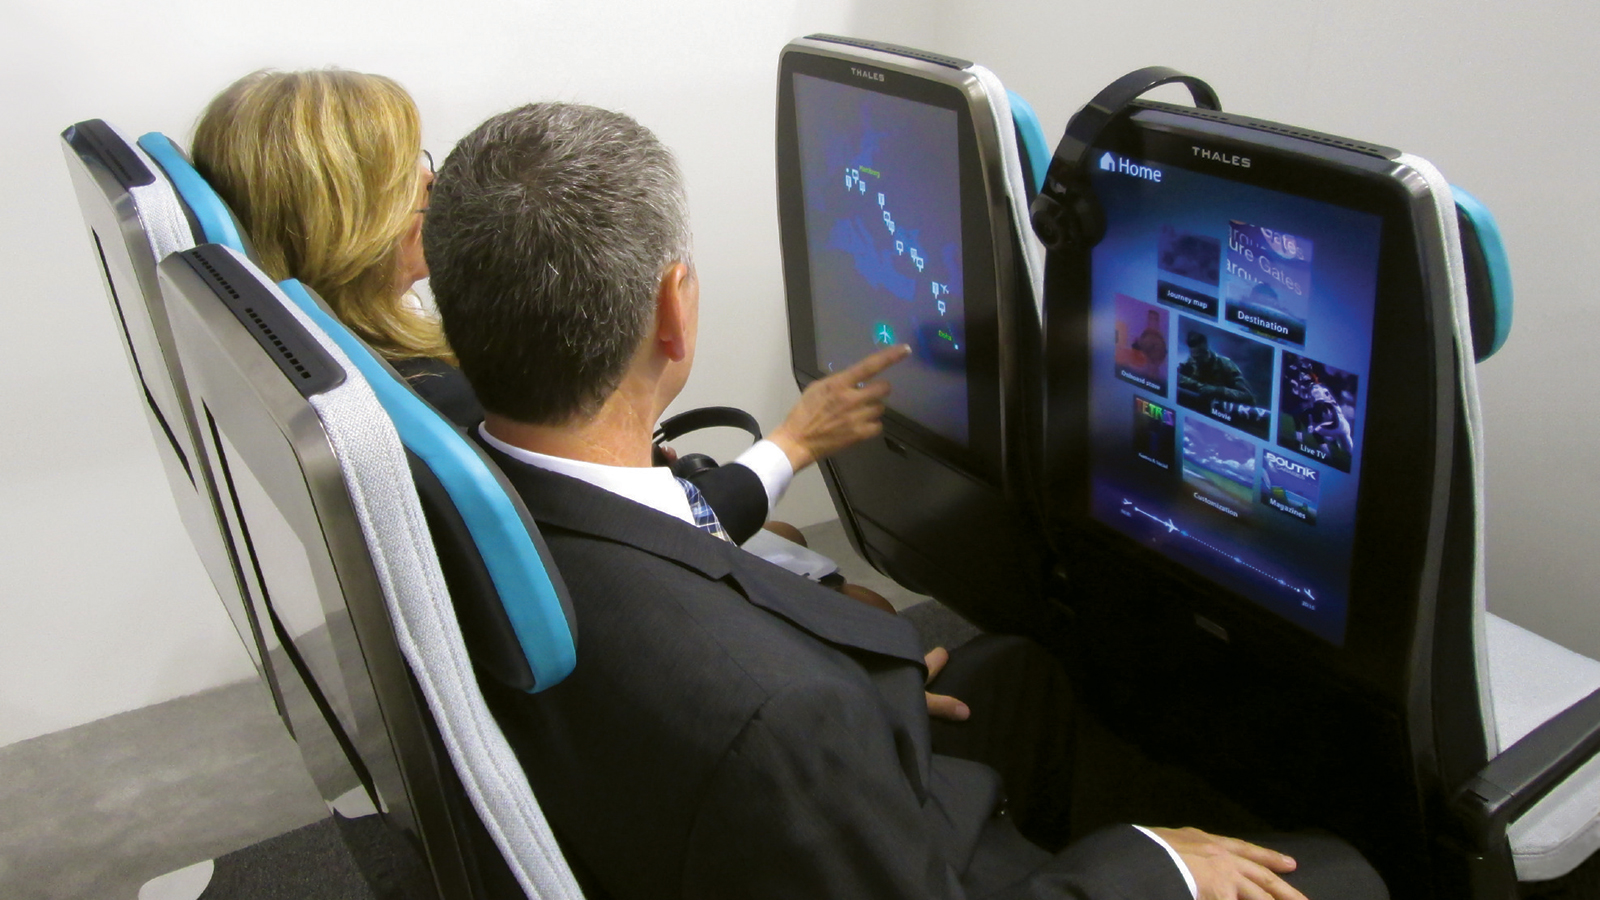 Smart devices: the future passenger inflight control centre